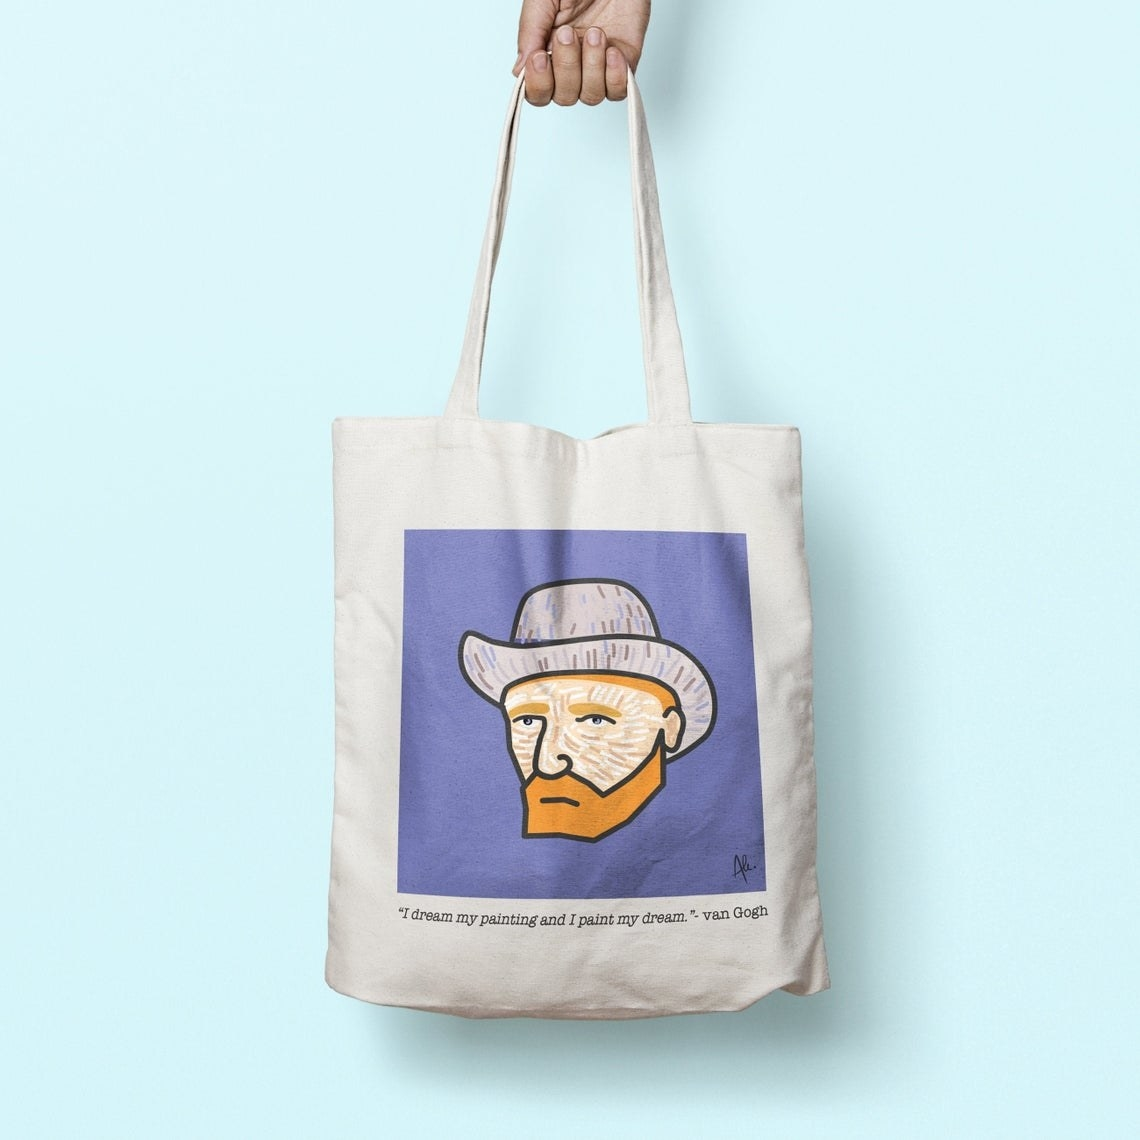 A person holding the tote bag by its handles